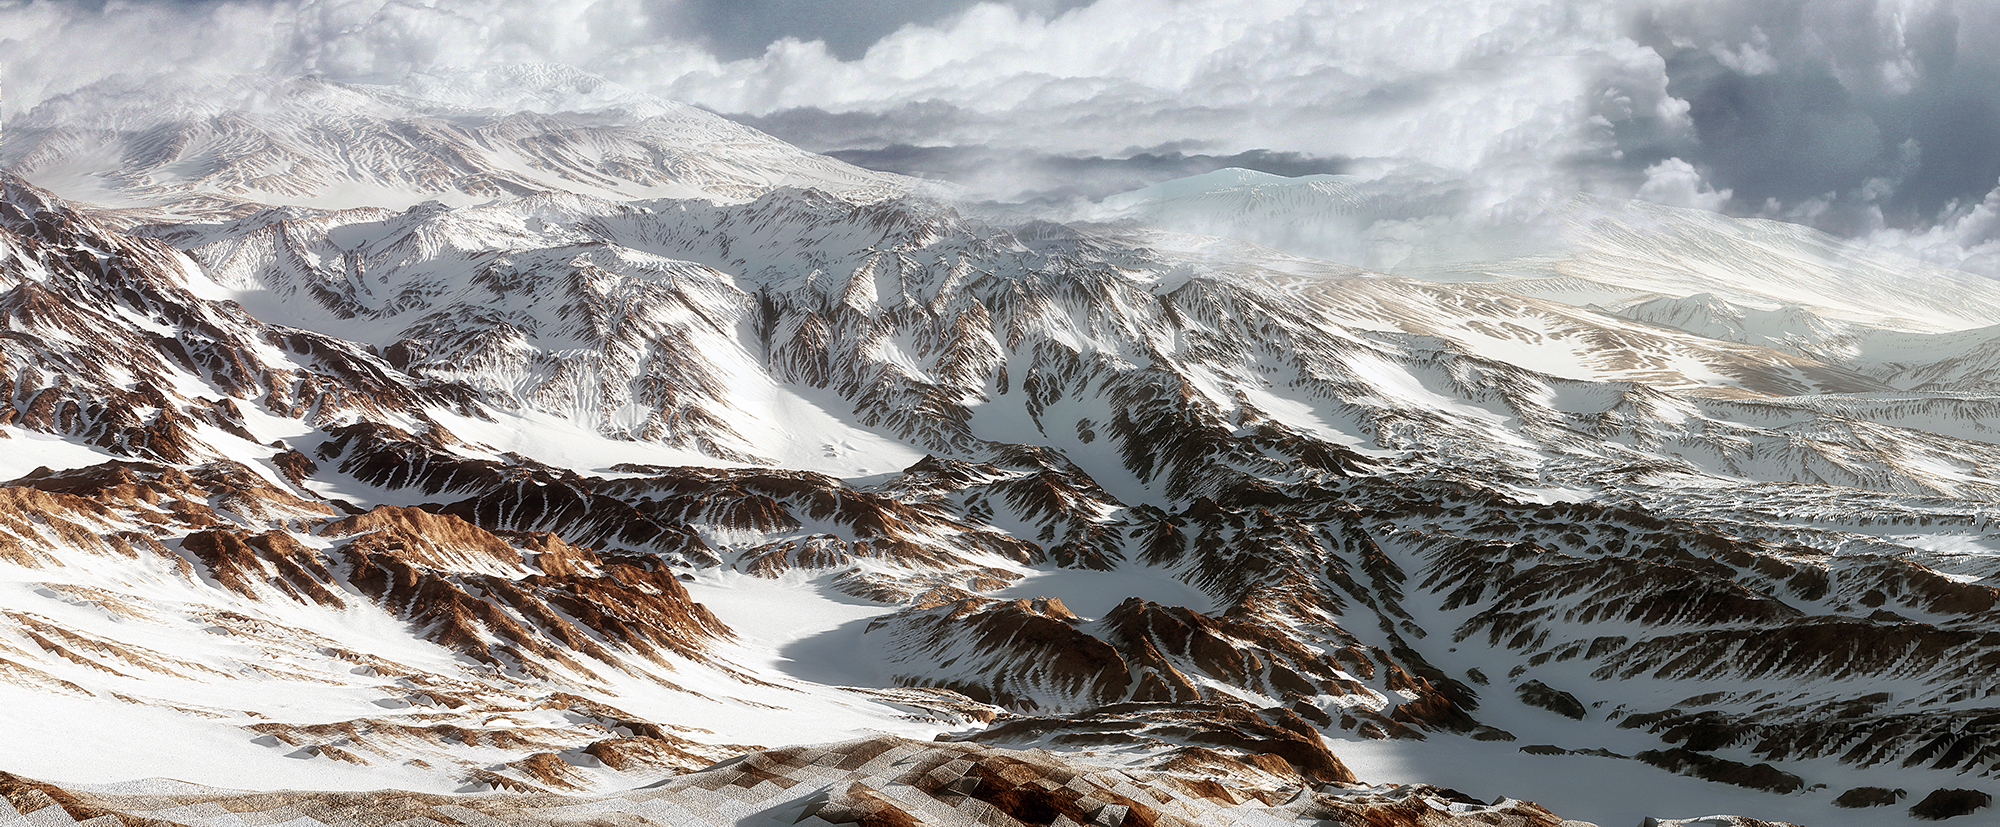 The Snow Mountain by ShannShah on DeviantArt